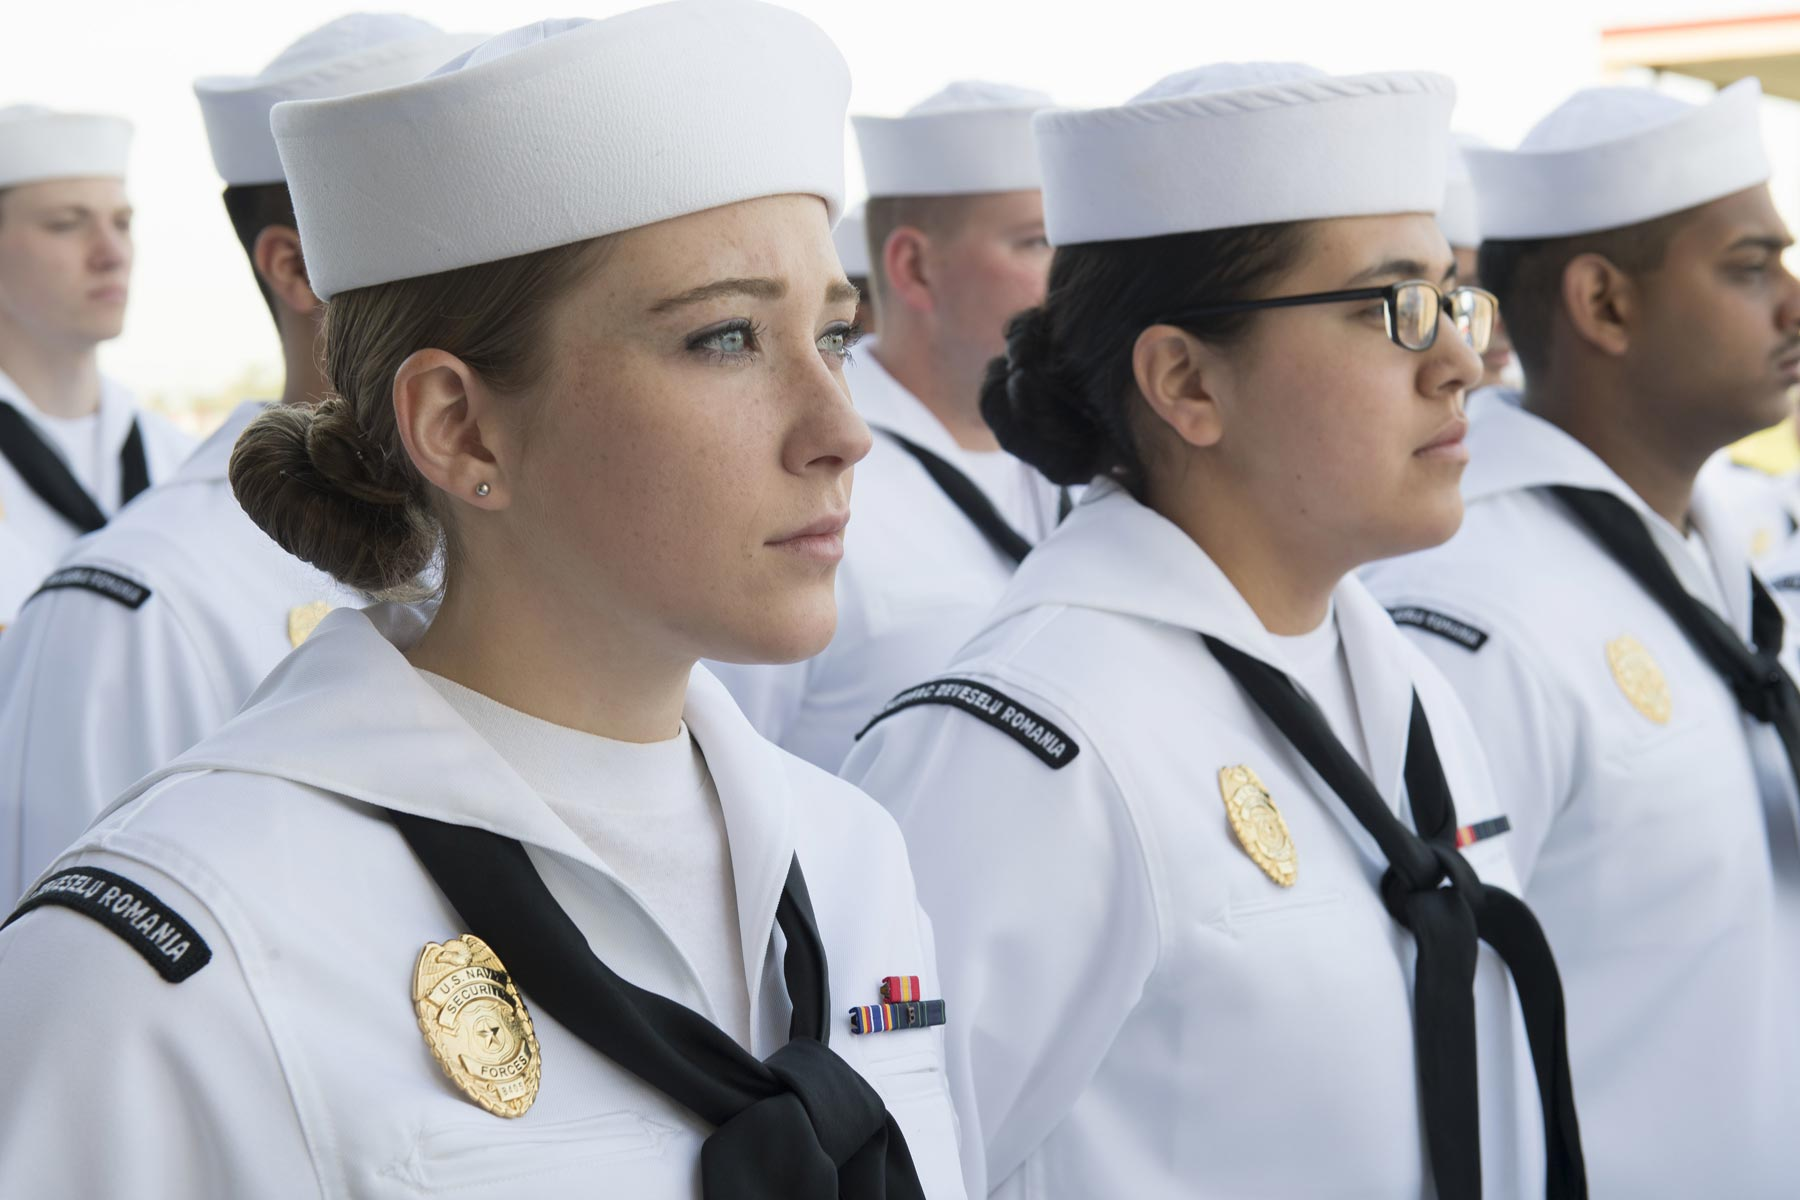 Navy OKs Ponytails, Locks And Other Hairstyles For Female